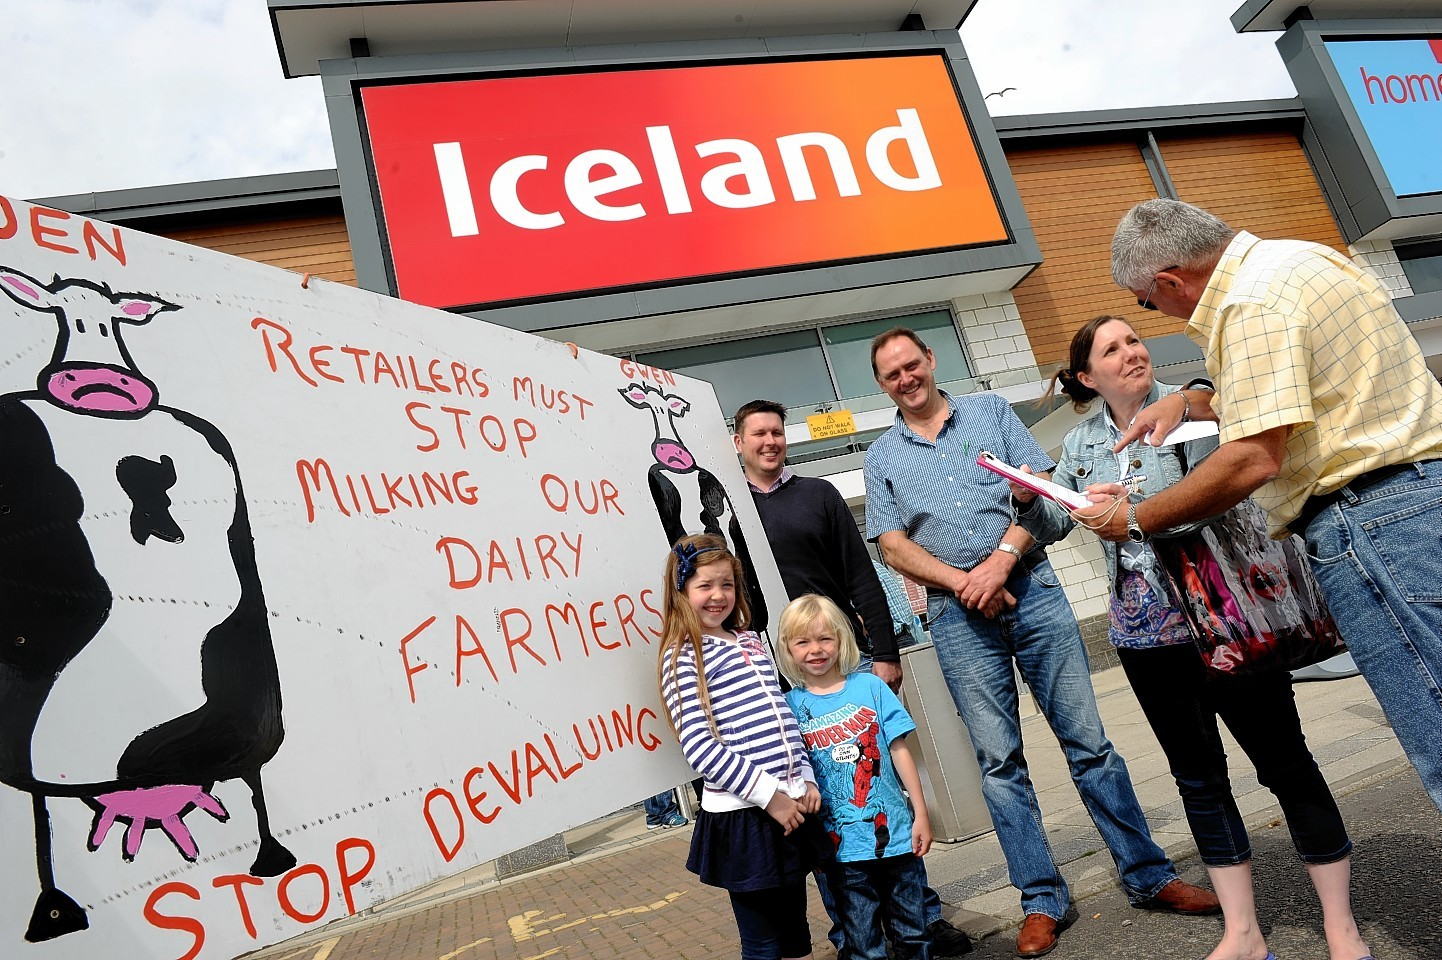 Dairy farmers protesting outside Iceland in Inverurie in 2012